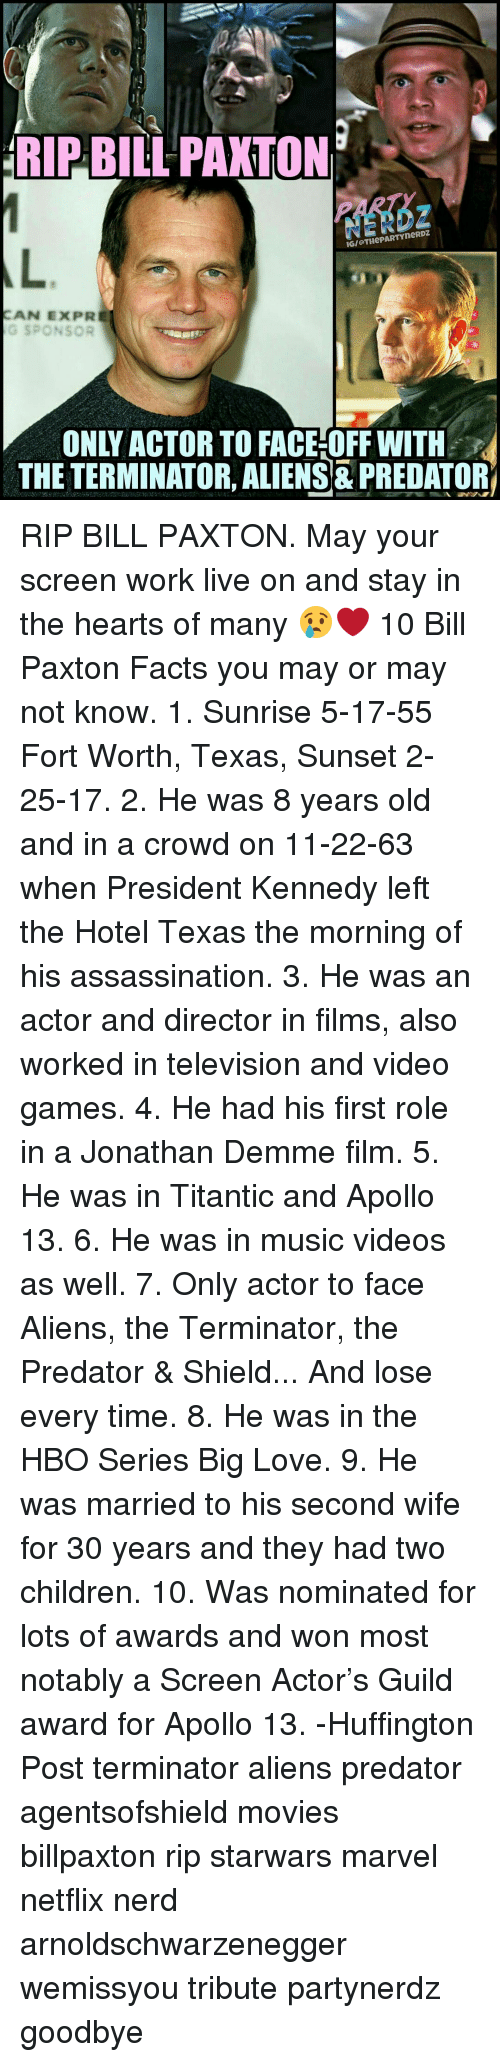 apollo 13: RIP BILL PAXTON  IGI THePARTYneRDZ  AN EXPR  G SPONSOR  THE TERMINATOR, ALIENS PREDATOR RIP BILL PAXTON. May your screen work live on and stay in the hearts of many 😢❤ 10 Bill Paxton Facts you may or may not know. 1. Sunrise 5-17-55 Fort Worth, Texas, Sunset 2-25-17. 2. He was 8 years old and in a crowd on 11-22-63 when President Kennedy left the Hotel Texas the morning of his assassination. 3. He was an actor and director in films, also worked in television and video games. 4. He had his first role in a Jonathan Demme film. 5. He was in Titantic and Apollo 13. 6. He was in music videos as well. 7. Only actor to face Aliens, the Terminator, the Predator & Shield... And lose every time. 8. He was in the HBO Series Big Love. 9. He was married to his second wife for 30 years and they had two children. 10. Was nominated for lots of awards and won most notably a Screen Actor's Guild award for Apollo 13. -Huffington Post terminator aliens predator agentsofshield movies billpaxton rip starwars marvel netflix nerd arnoldschwarzenegger wemissyou tribute partynerdz goodbye